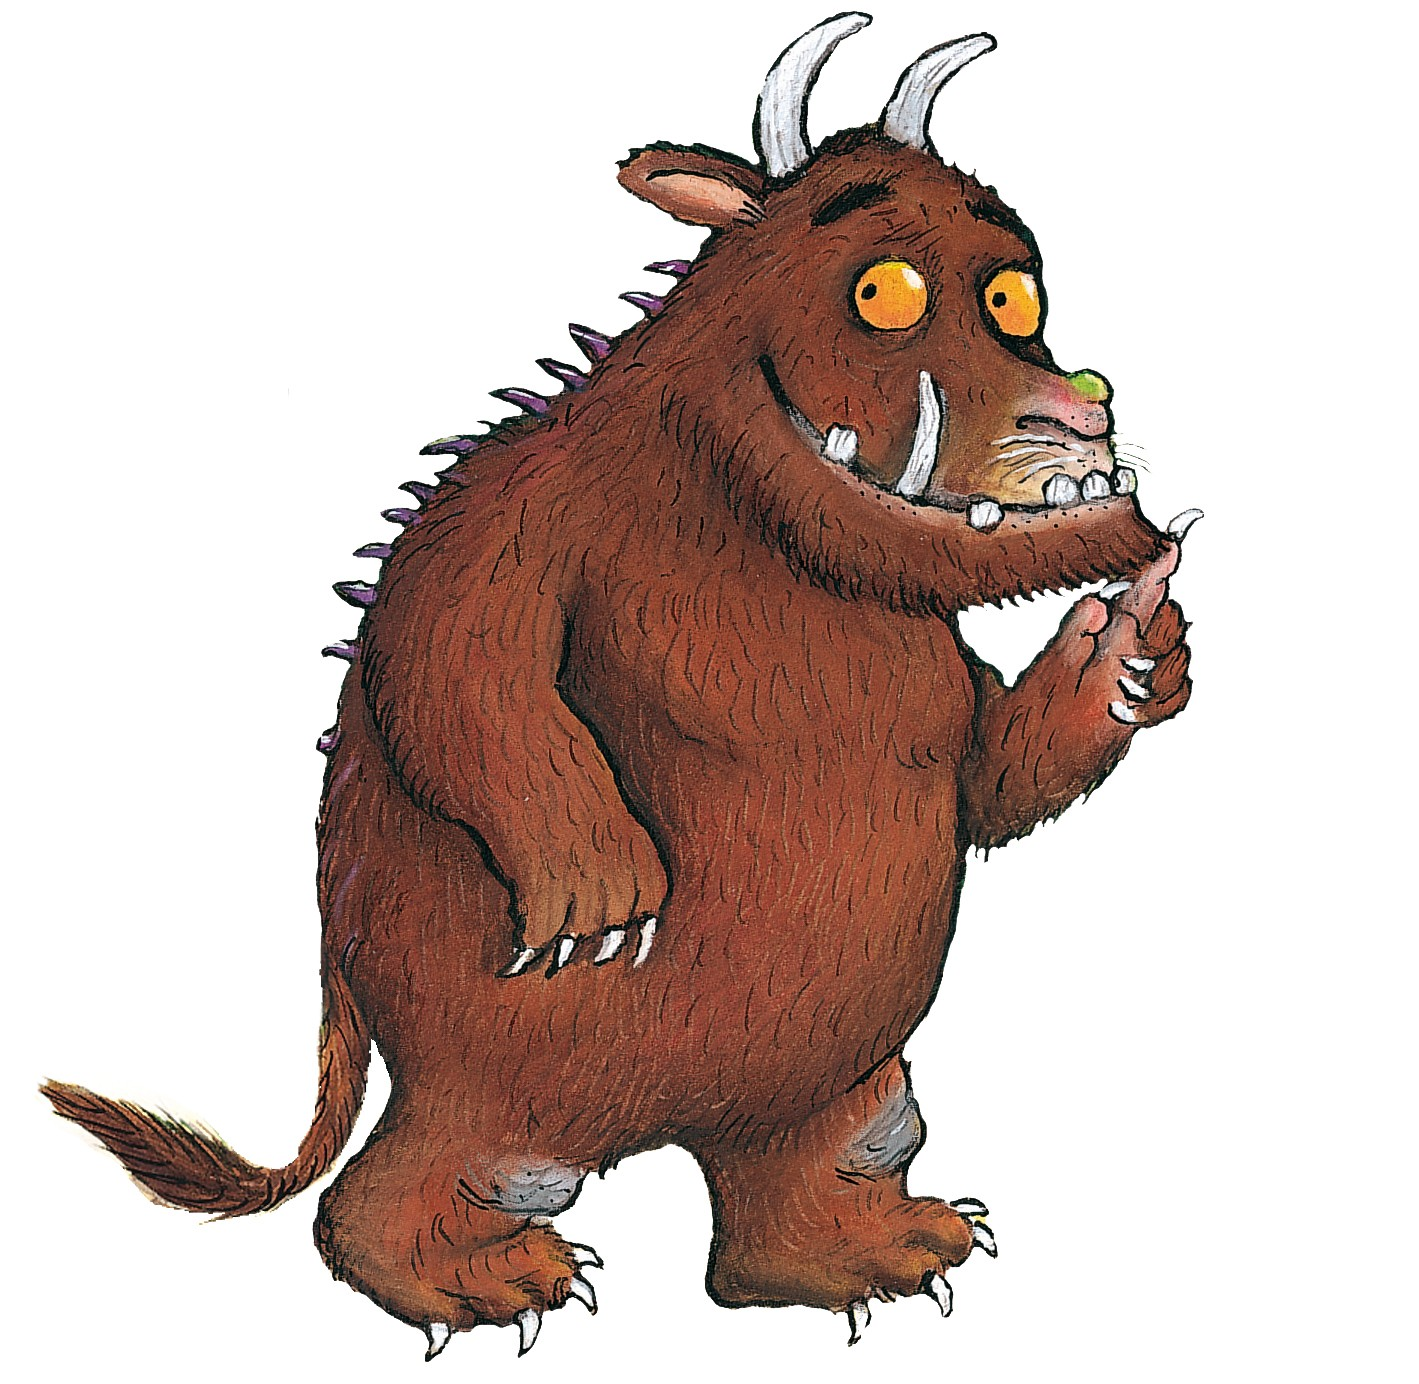 Gruffalo Characters Book Covers